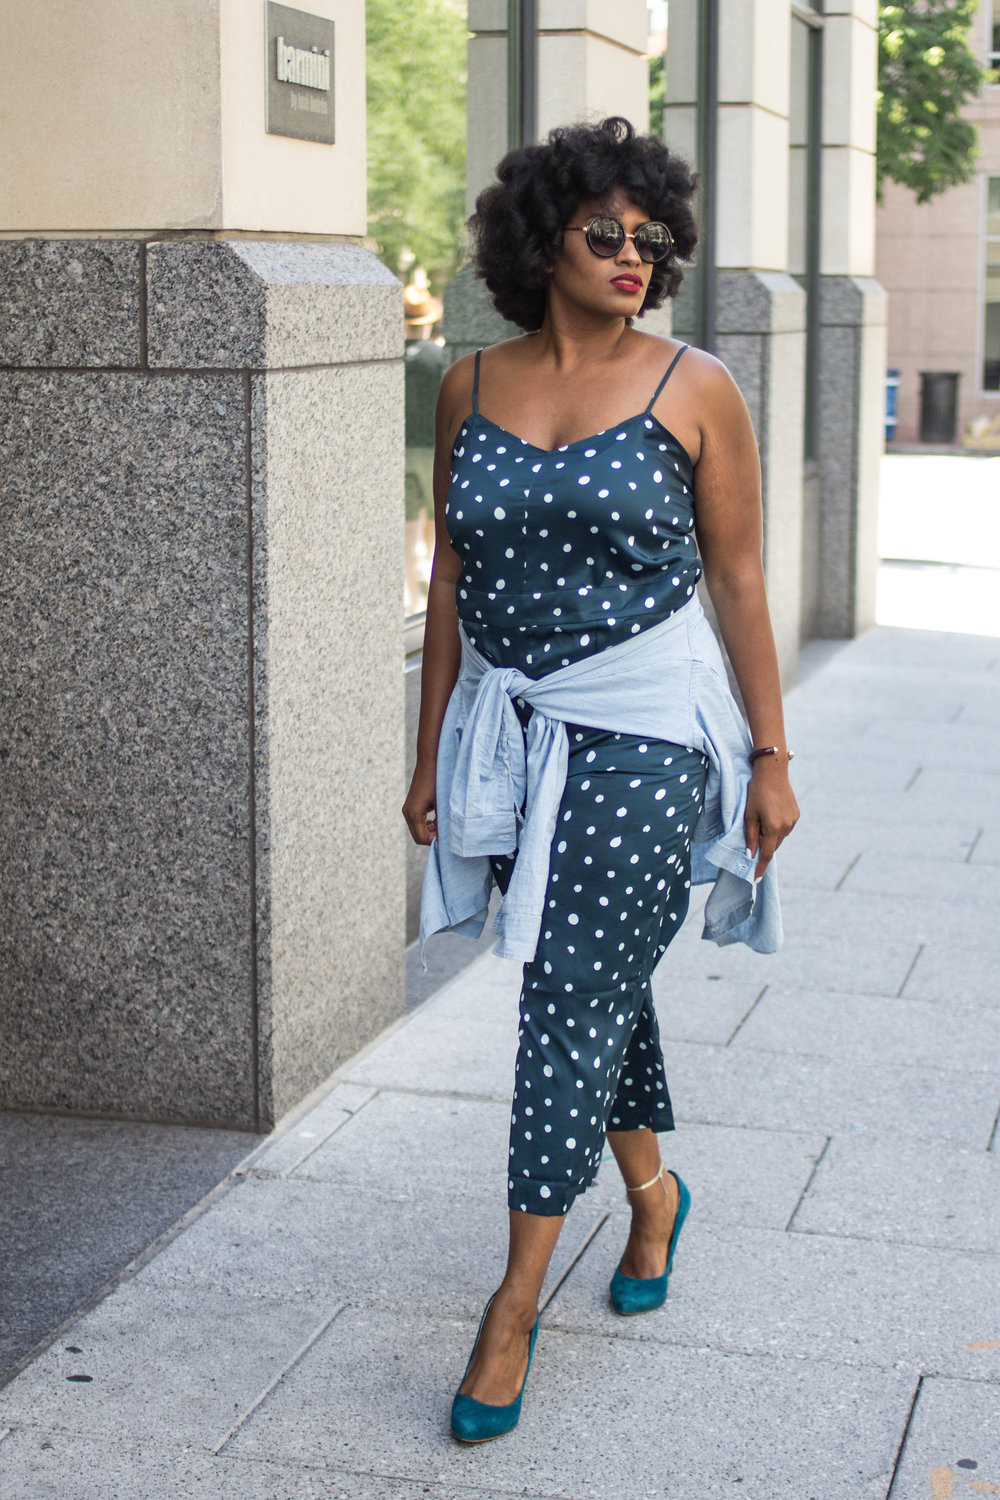 tracee ellis ross + style + natural hair + fashion